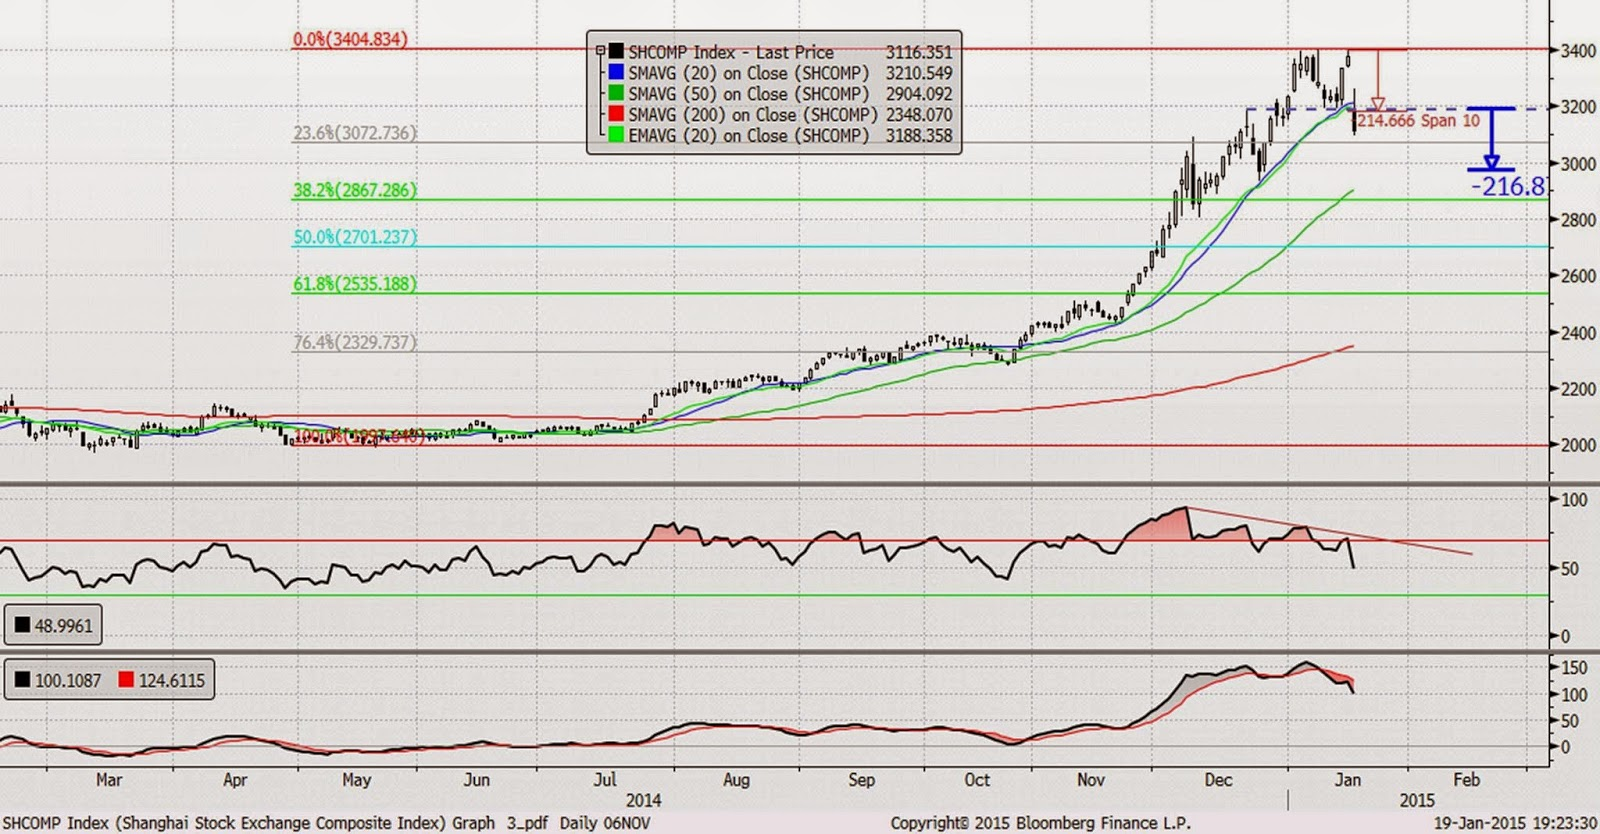 SHANGHAI SE COMPOSITE INDEXindex chart, prices and performance, plus recent news and analysis.